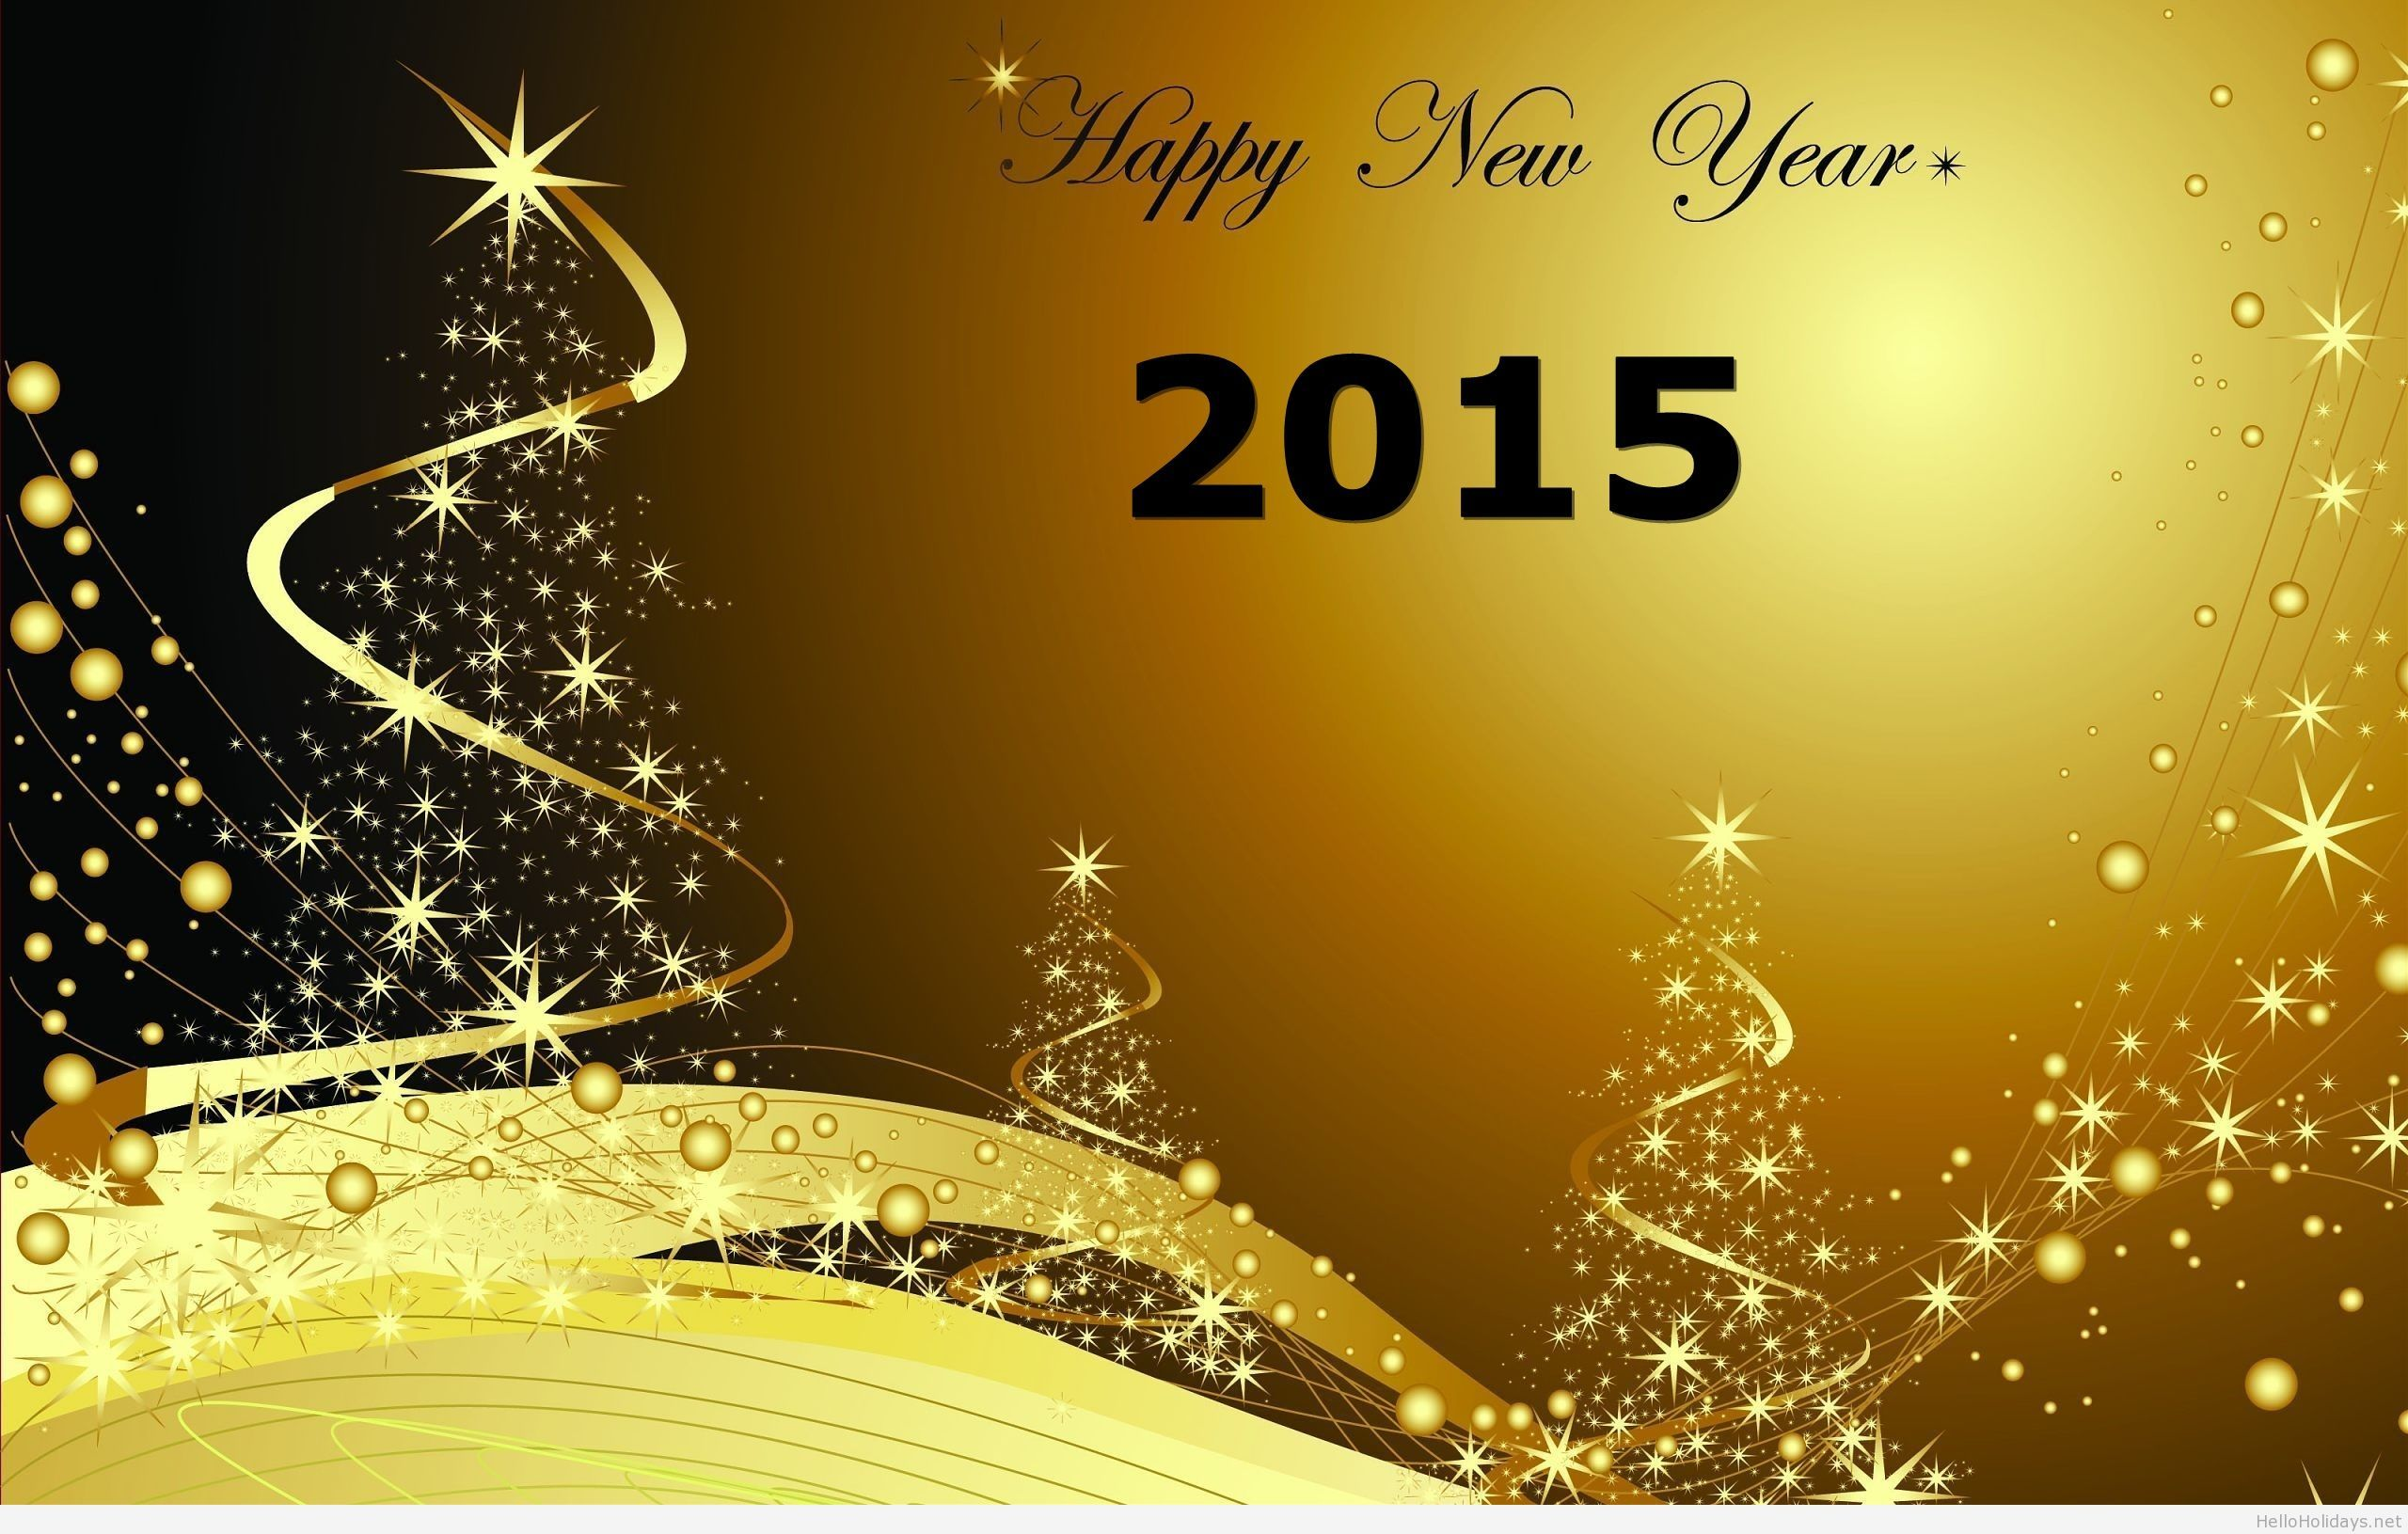 Happy New Year 2015 wallpaper image Life Happy new year 2017 2560x1631